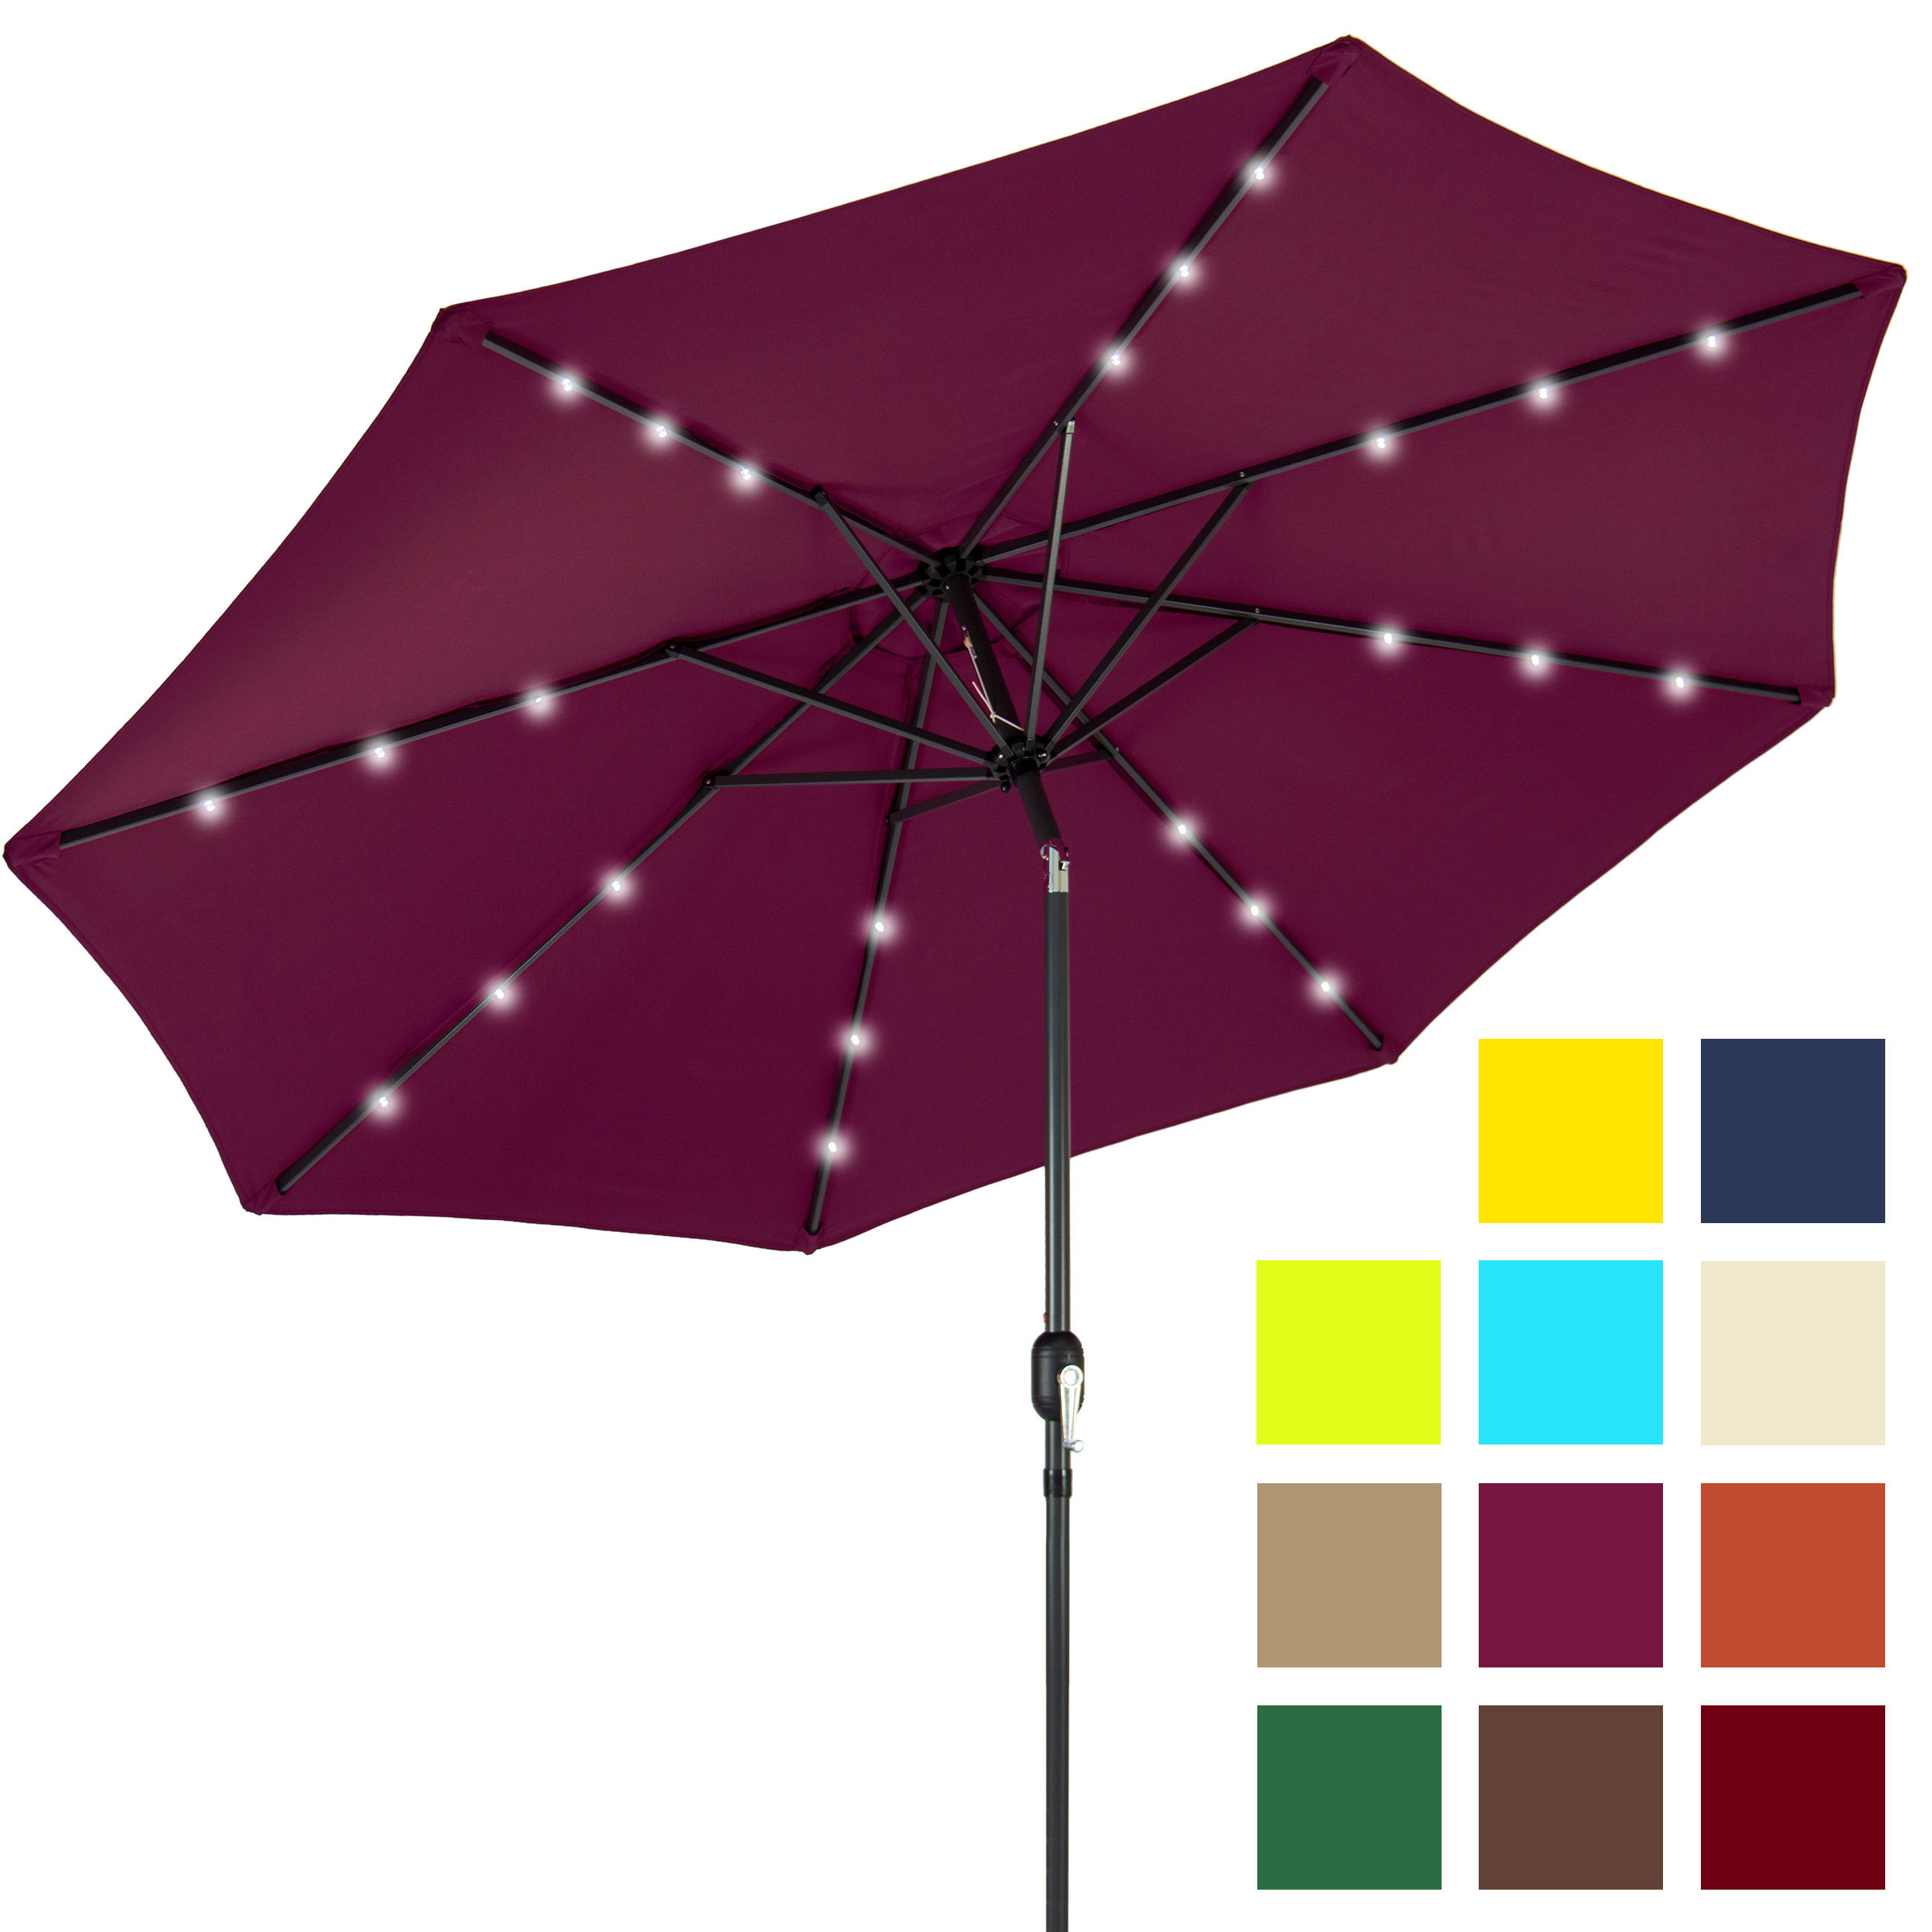 BCP 10FT Deluxe Patio Umbrella W  Solar LED Lights, Tilt Adjustment Multicolor by Best Choice Products